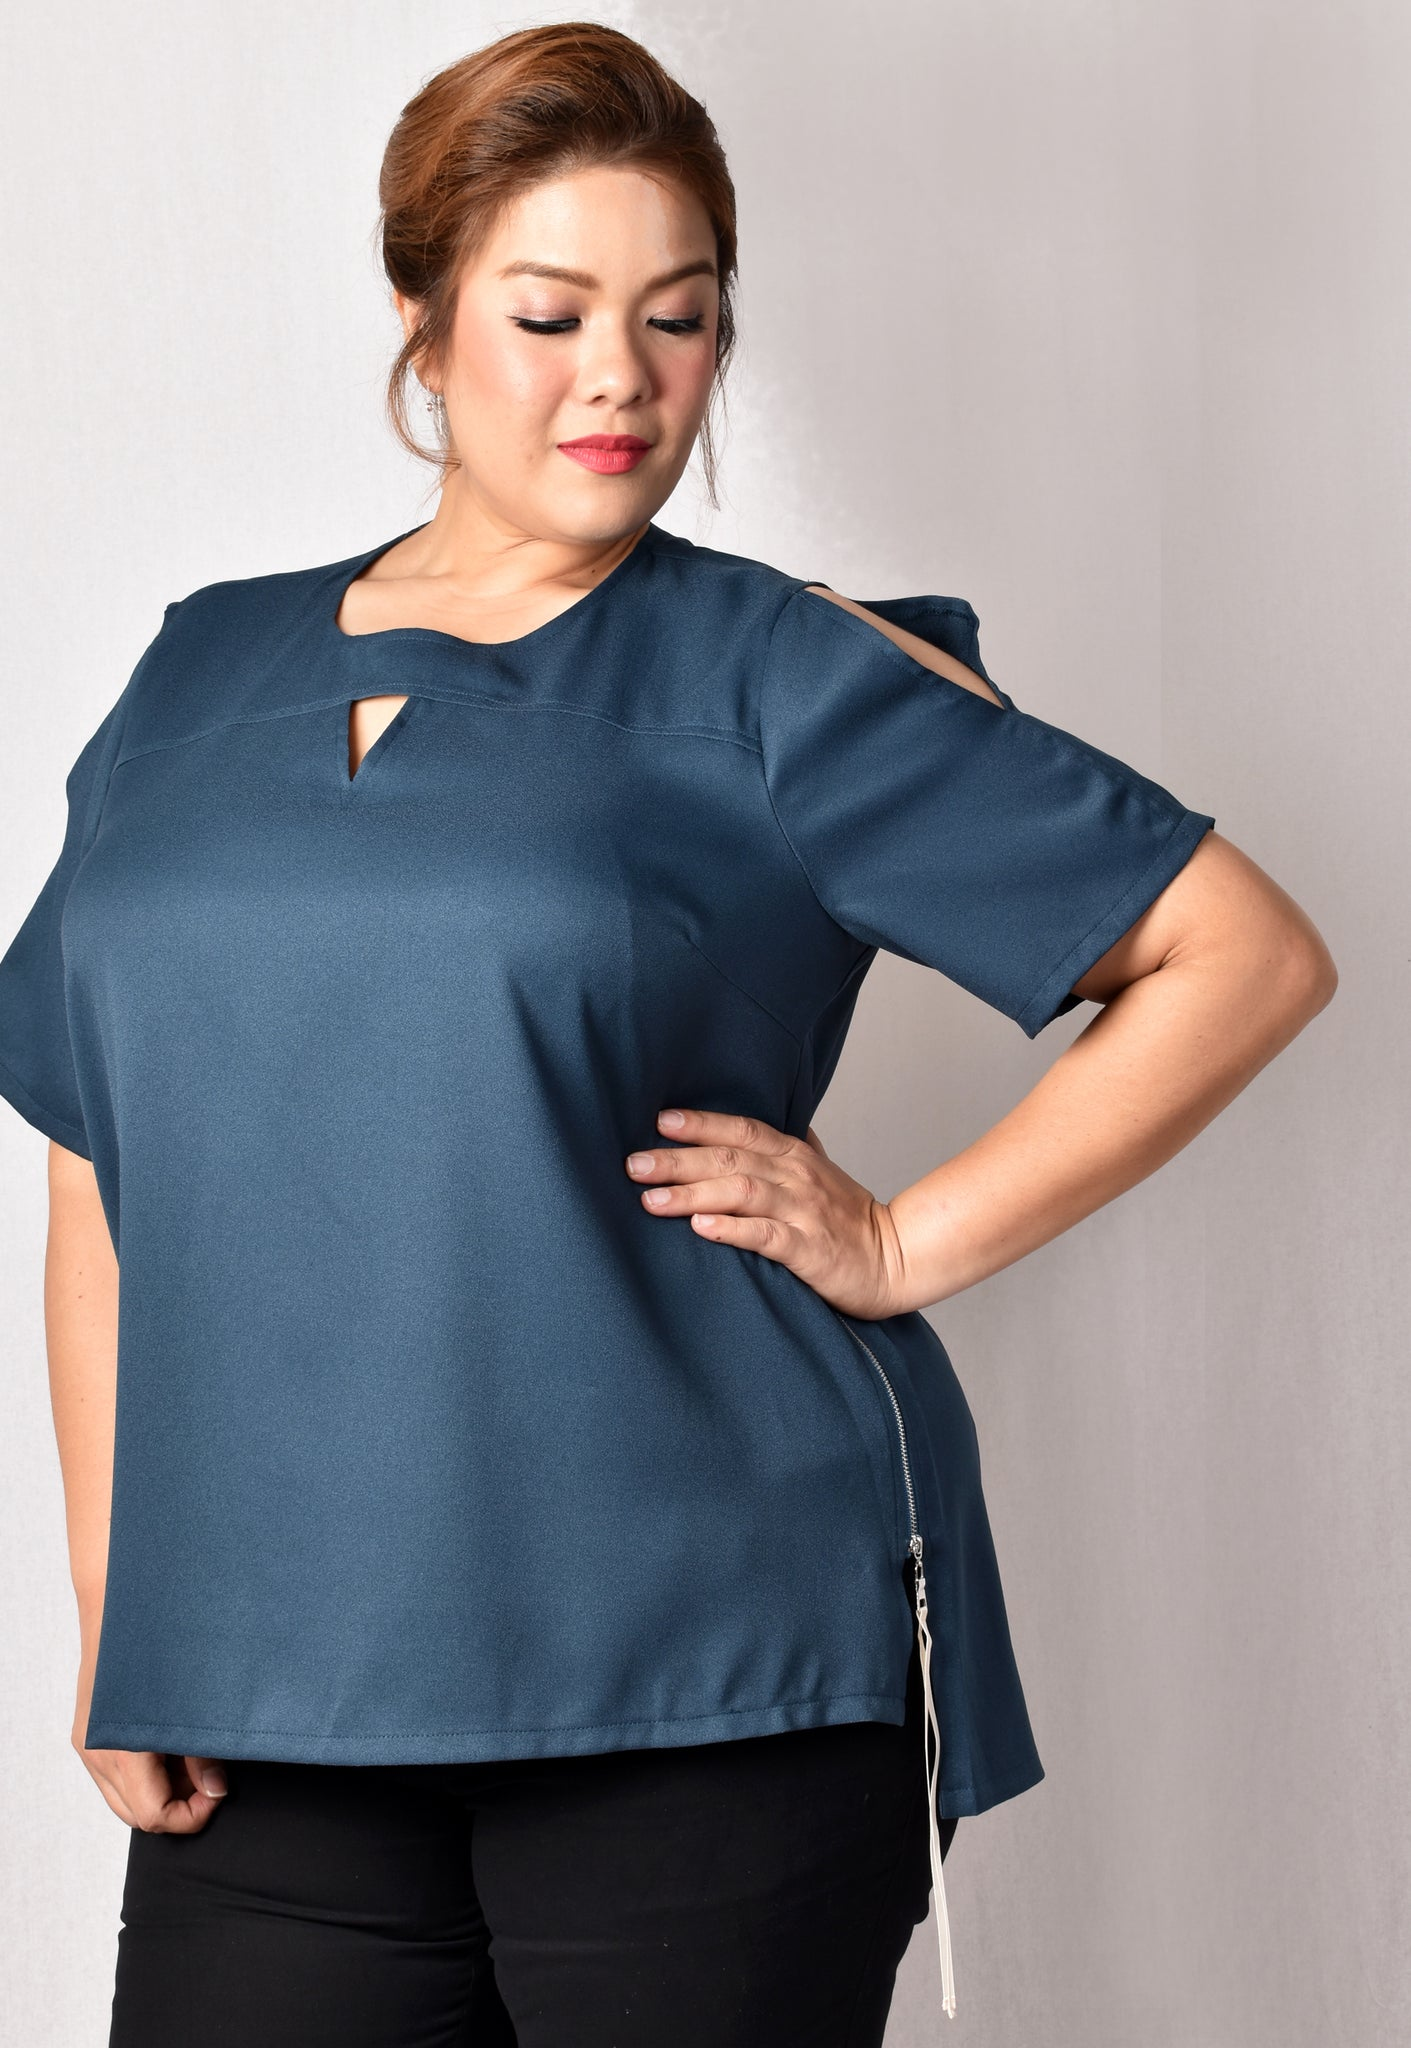 Teal Hi-low Blouse with Cut-outs with Side Zippers